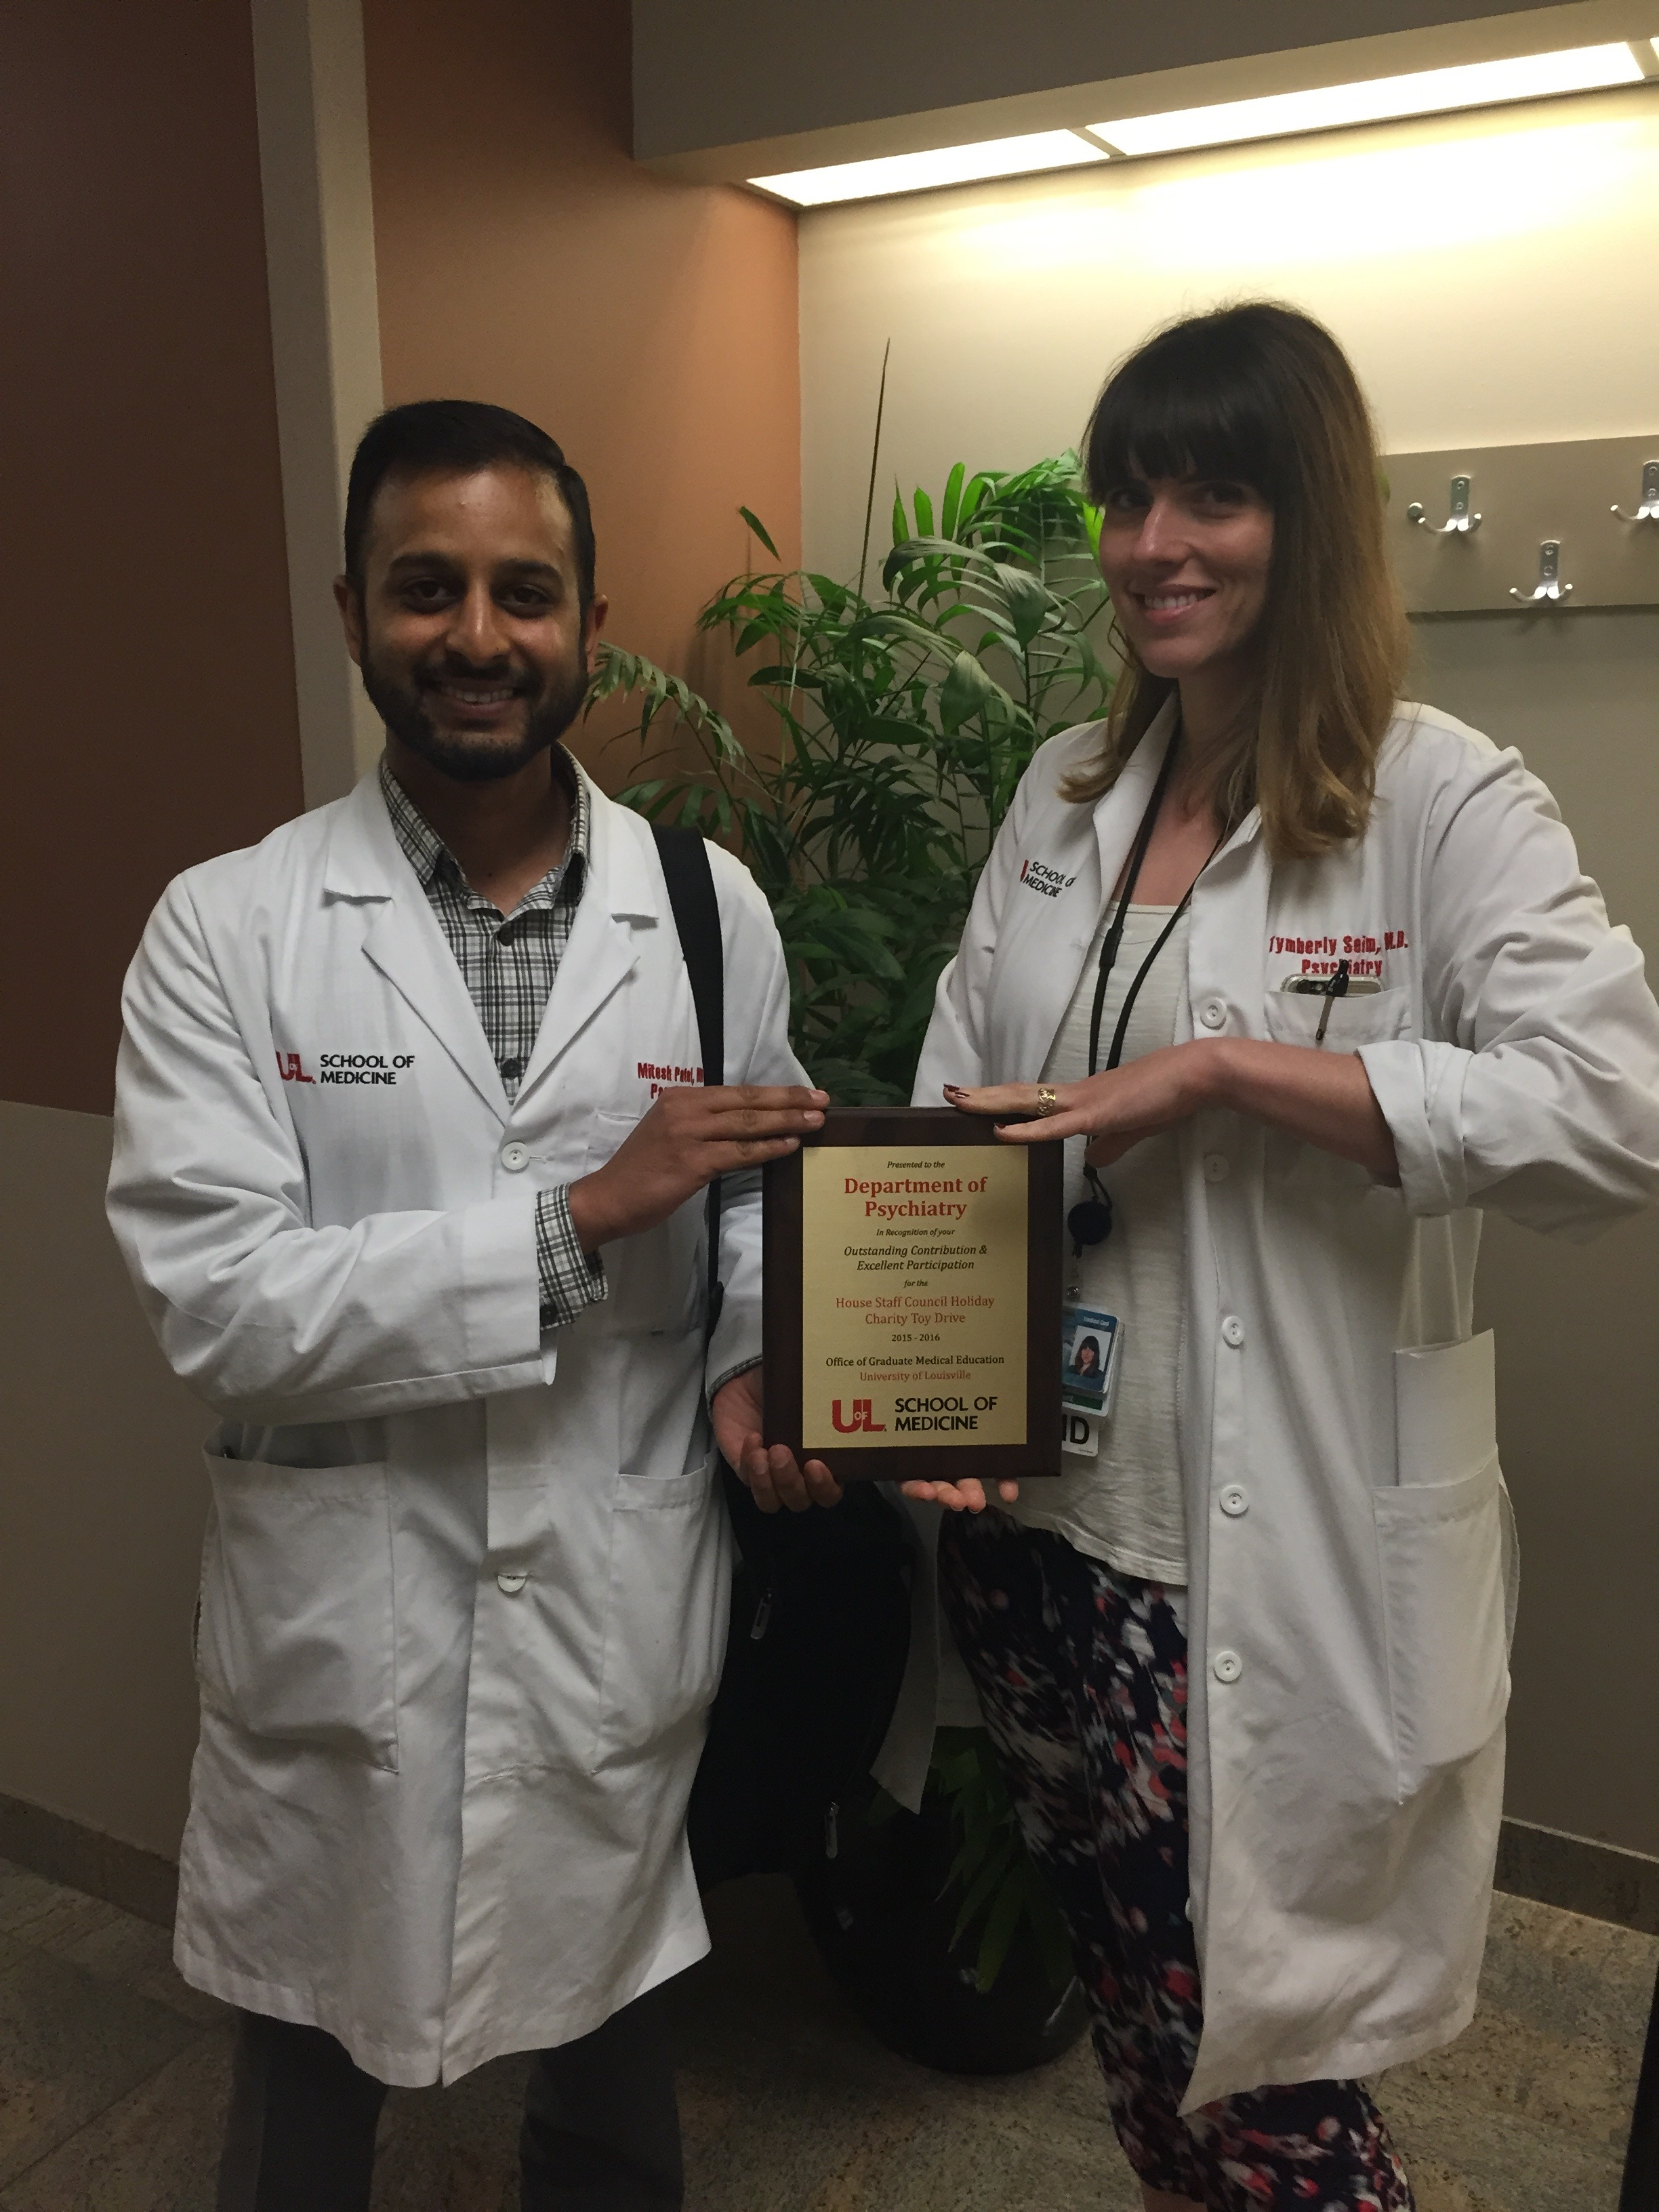 Mitesh Patel and Tymberly Siem hold the awards plaque for the most toys donated